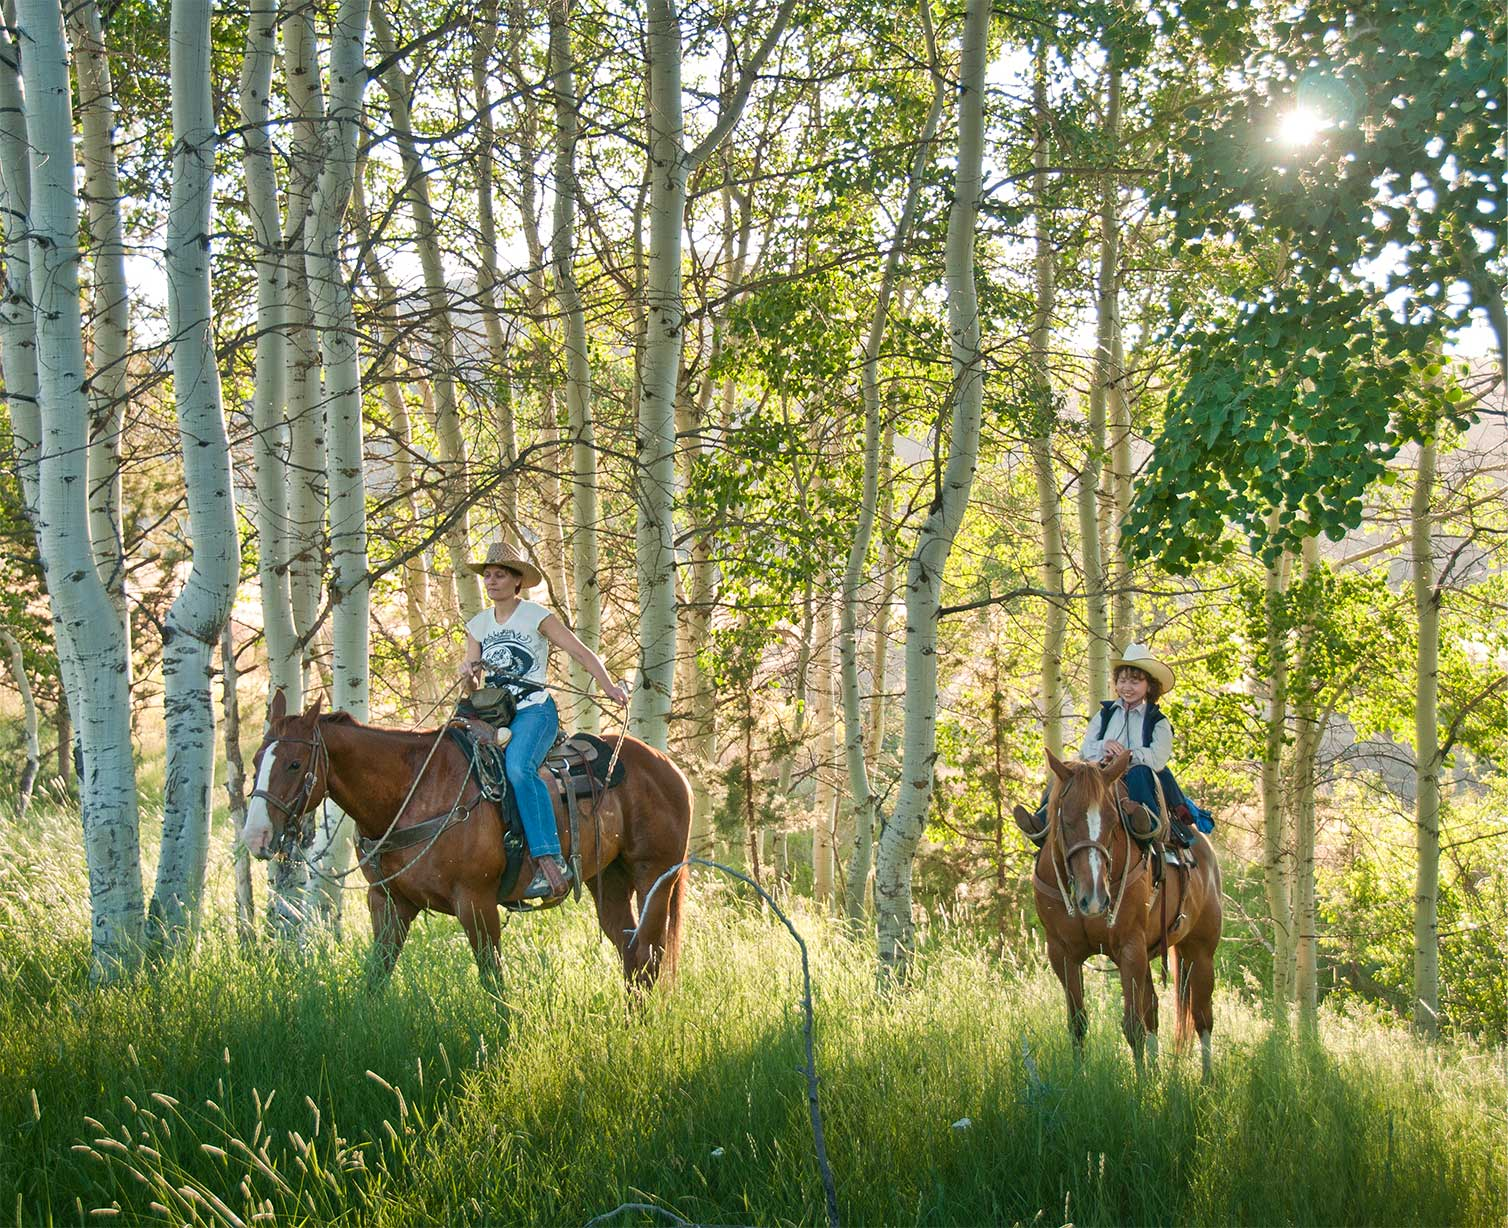 Riding horseback in an aspen grove